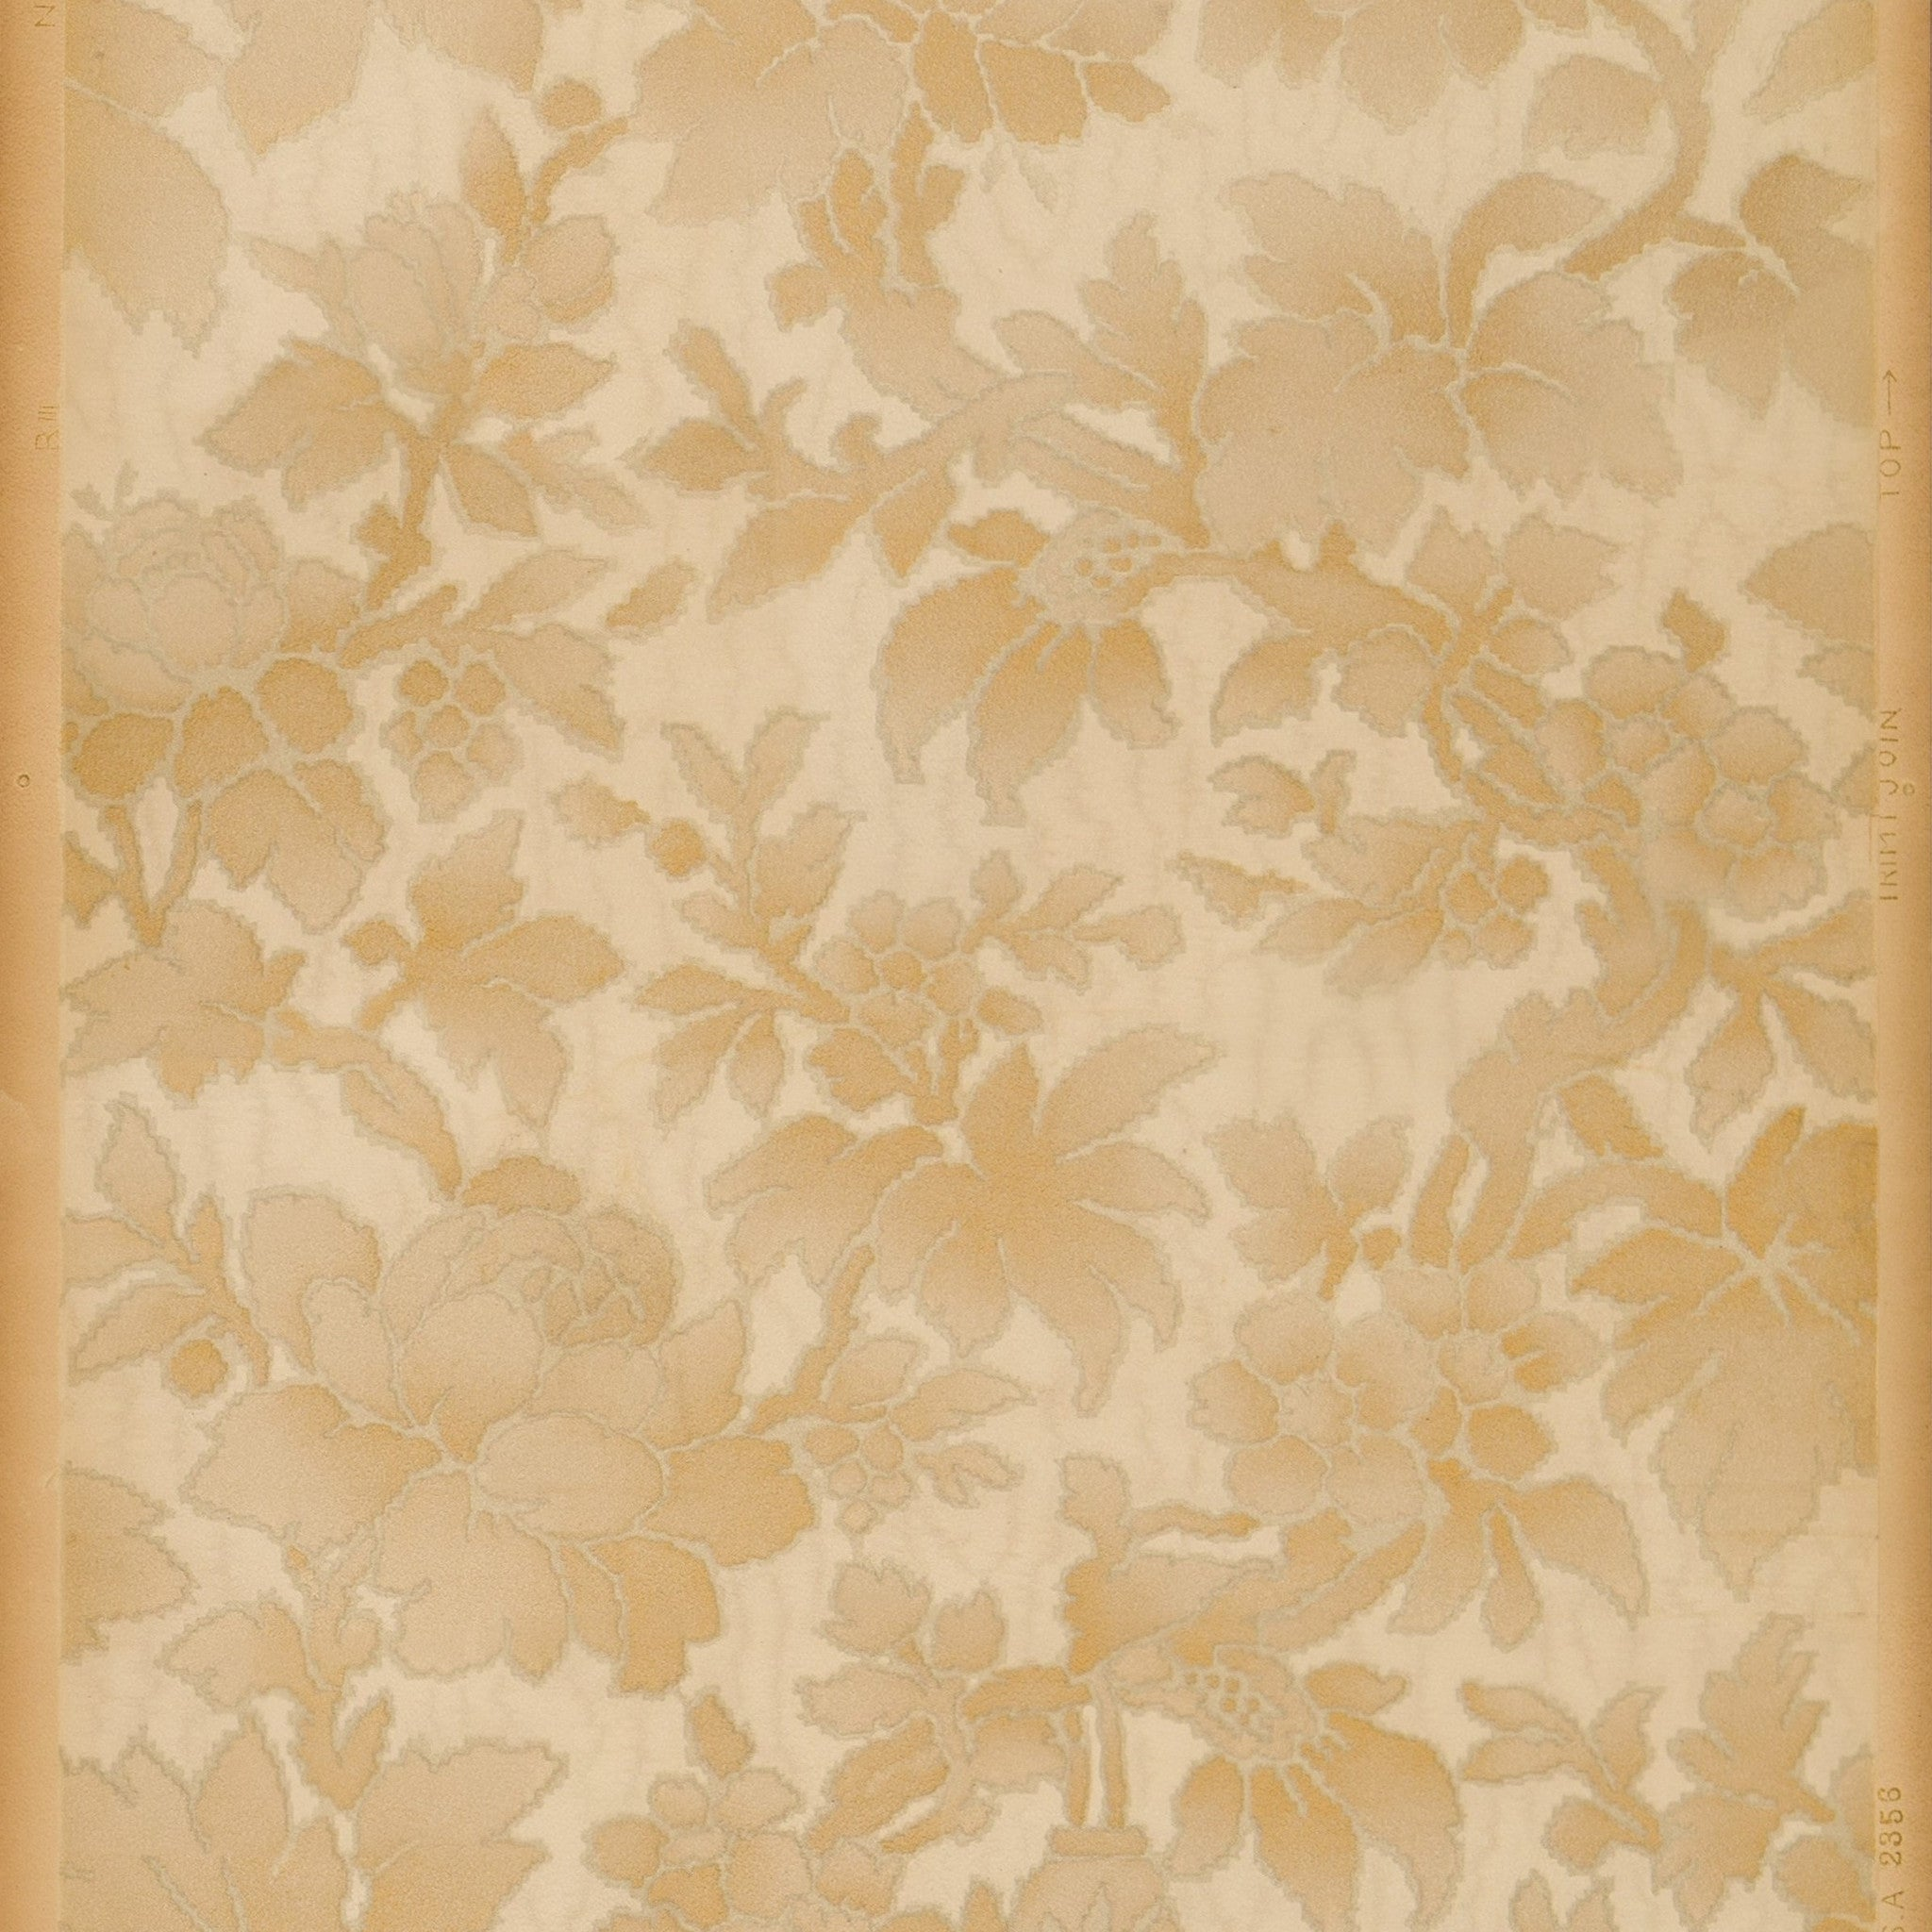 Soft Embossed Abstract Floral Foliate Antique Wallpaper Bolling Dev